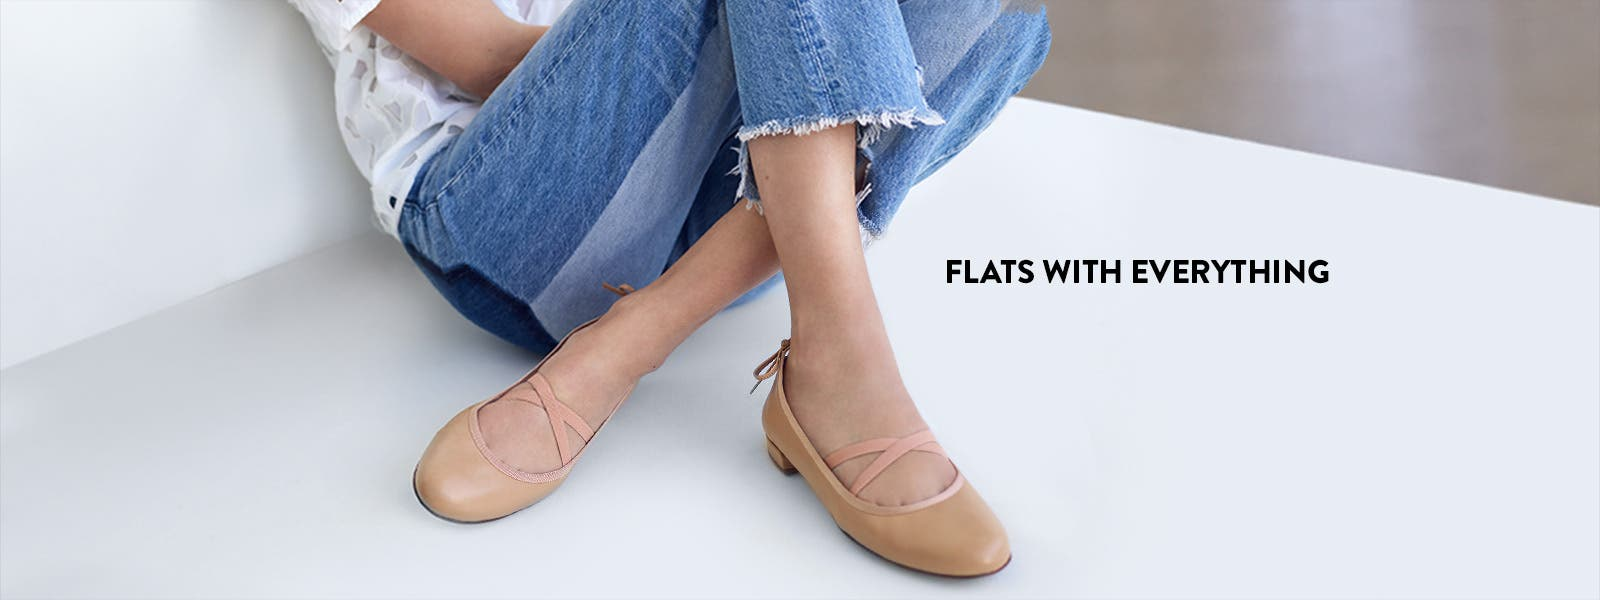 Flats with everything.